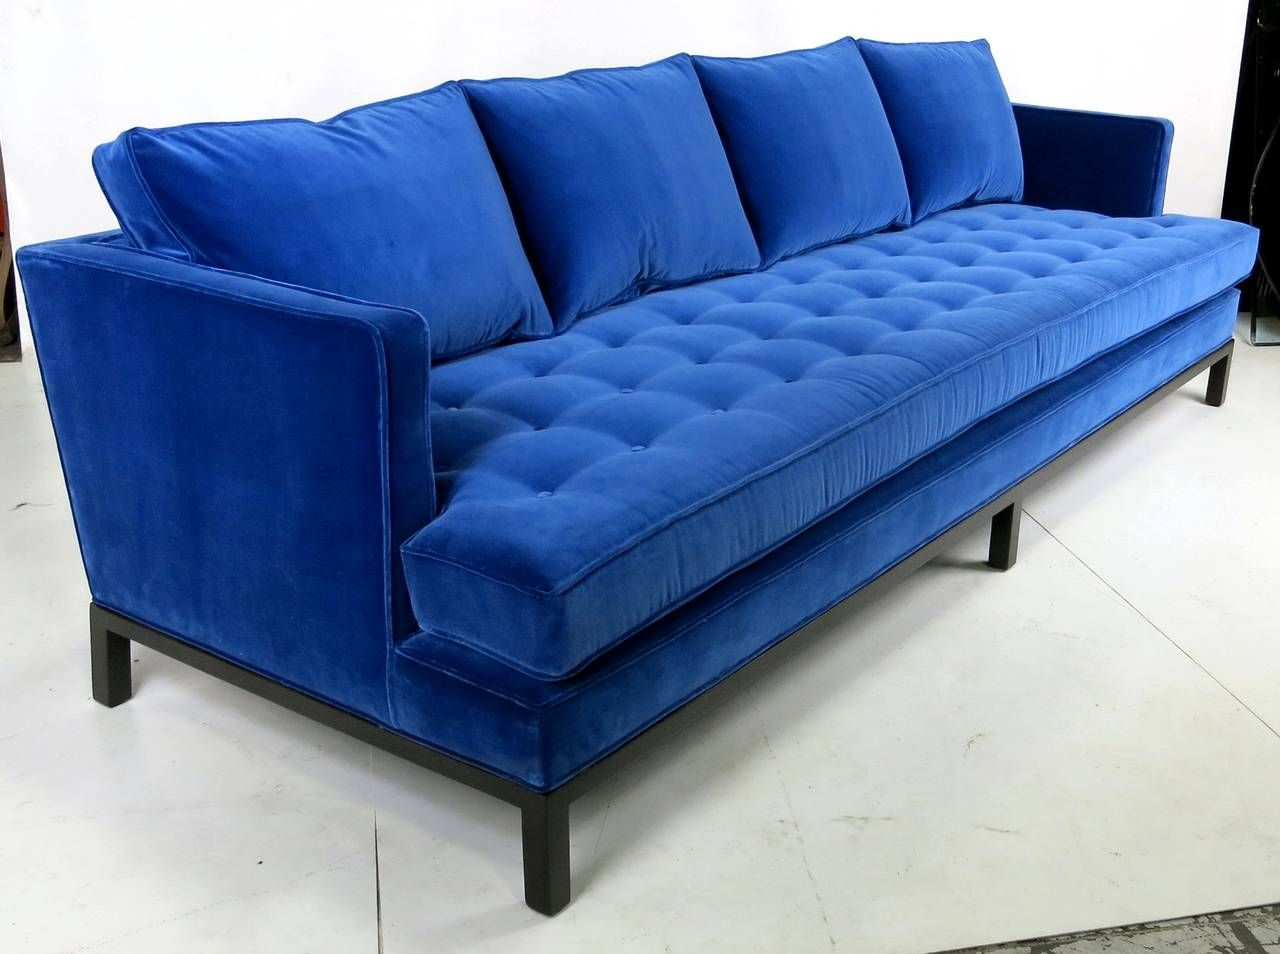 Surprising Harvey Probber Shelter Style Sofa In Cerulean Blue Velvet Gmtry Best Dining Table And Chair Ideas Images Gmtryco